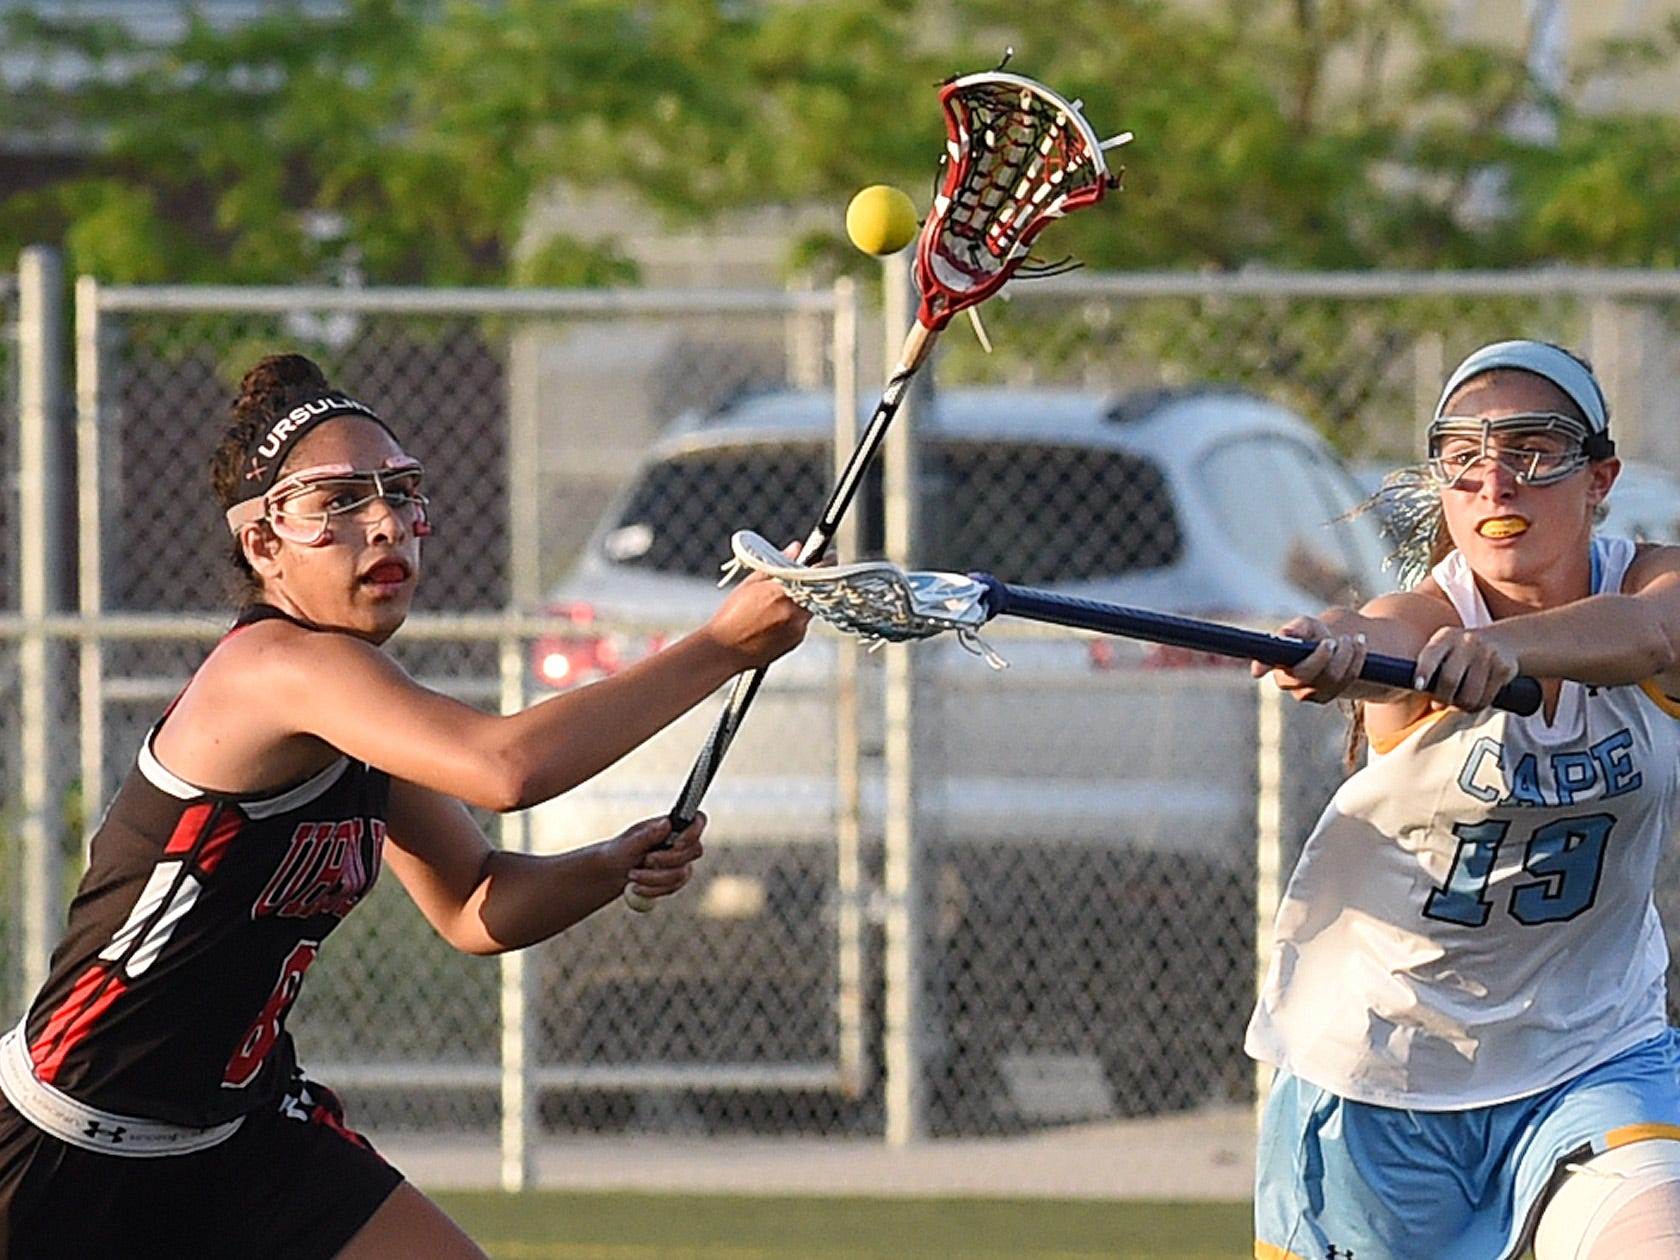 Cape Henlopen's Alison Palmer and Ursuline's Emily Blaszkow go after the ball in Cape's 17-4 win on Tuesday.